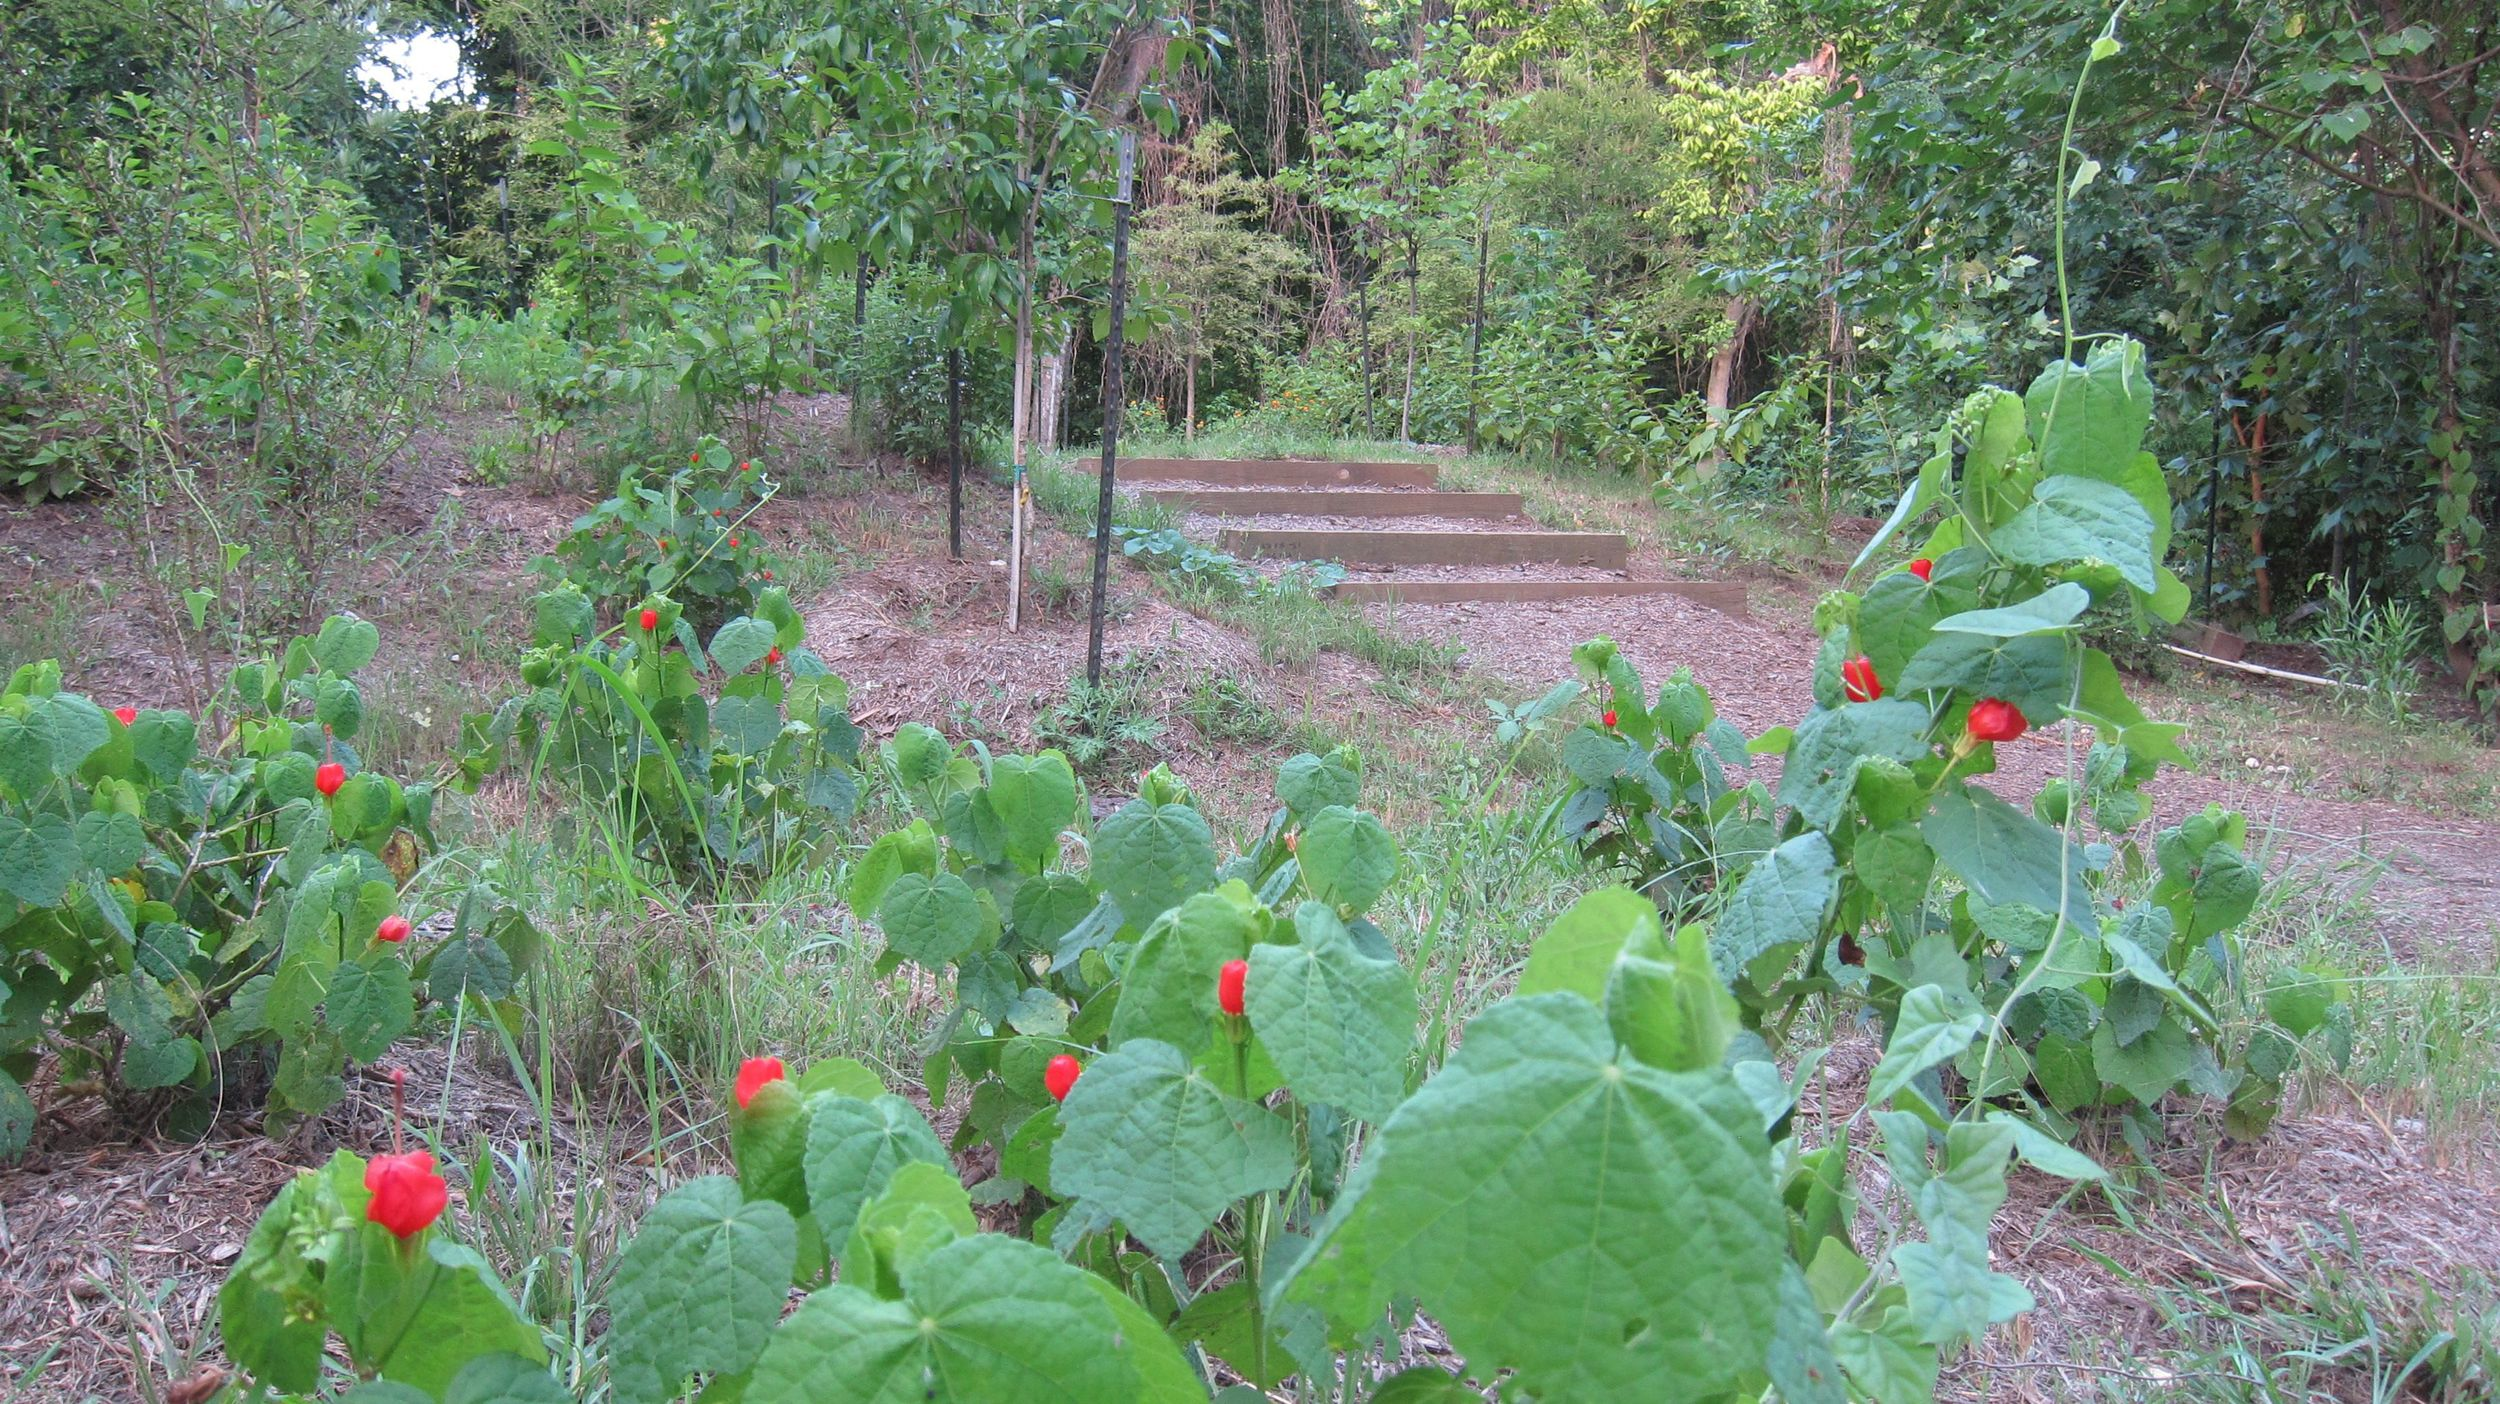 Turk's Cap. Photograph by Nat Smith 2014.